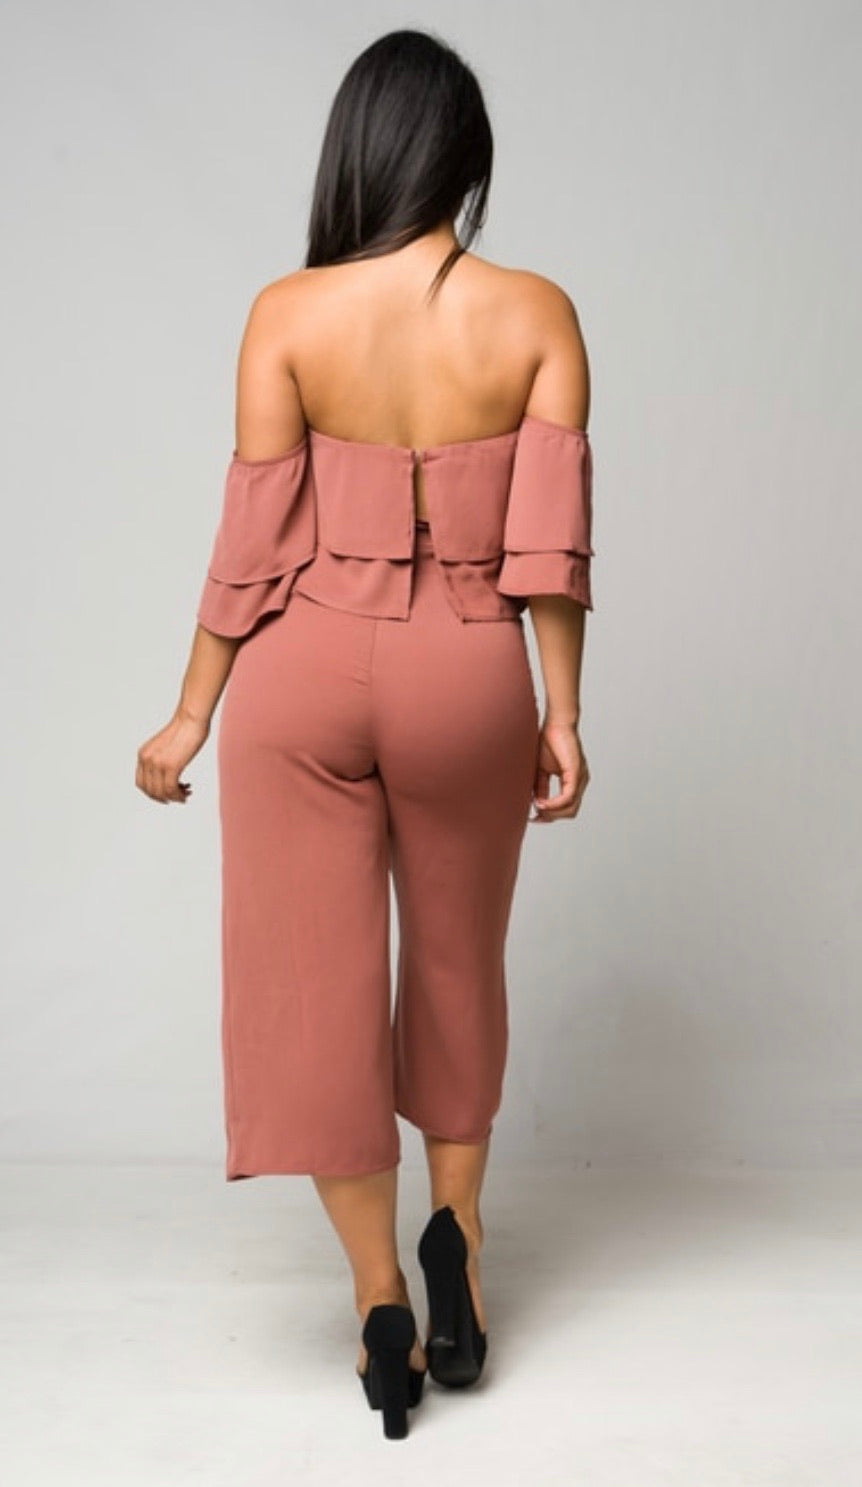 Get It Girl Jumper - The Divaz Closet